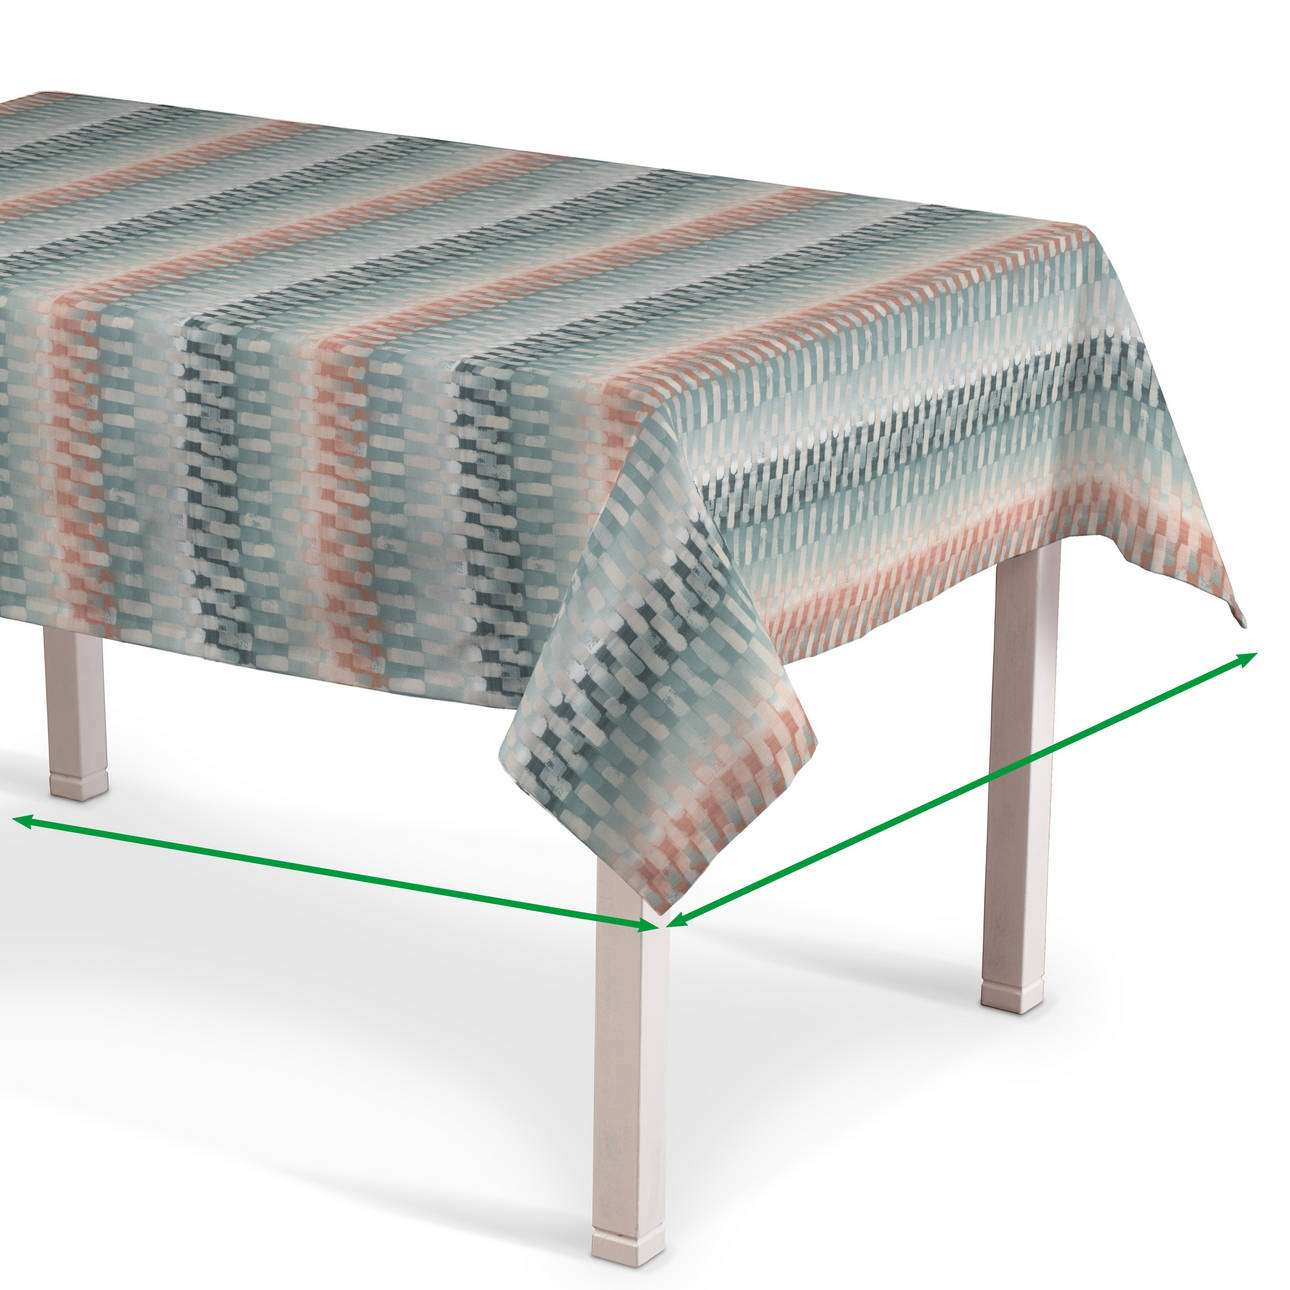 Rectangular tablecloth in collection Pastel Forest, fabric: 142-51